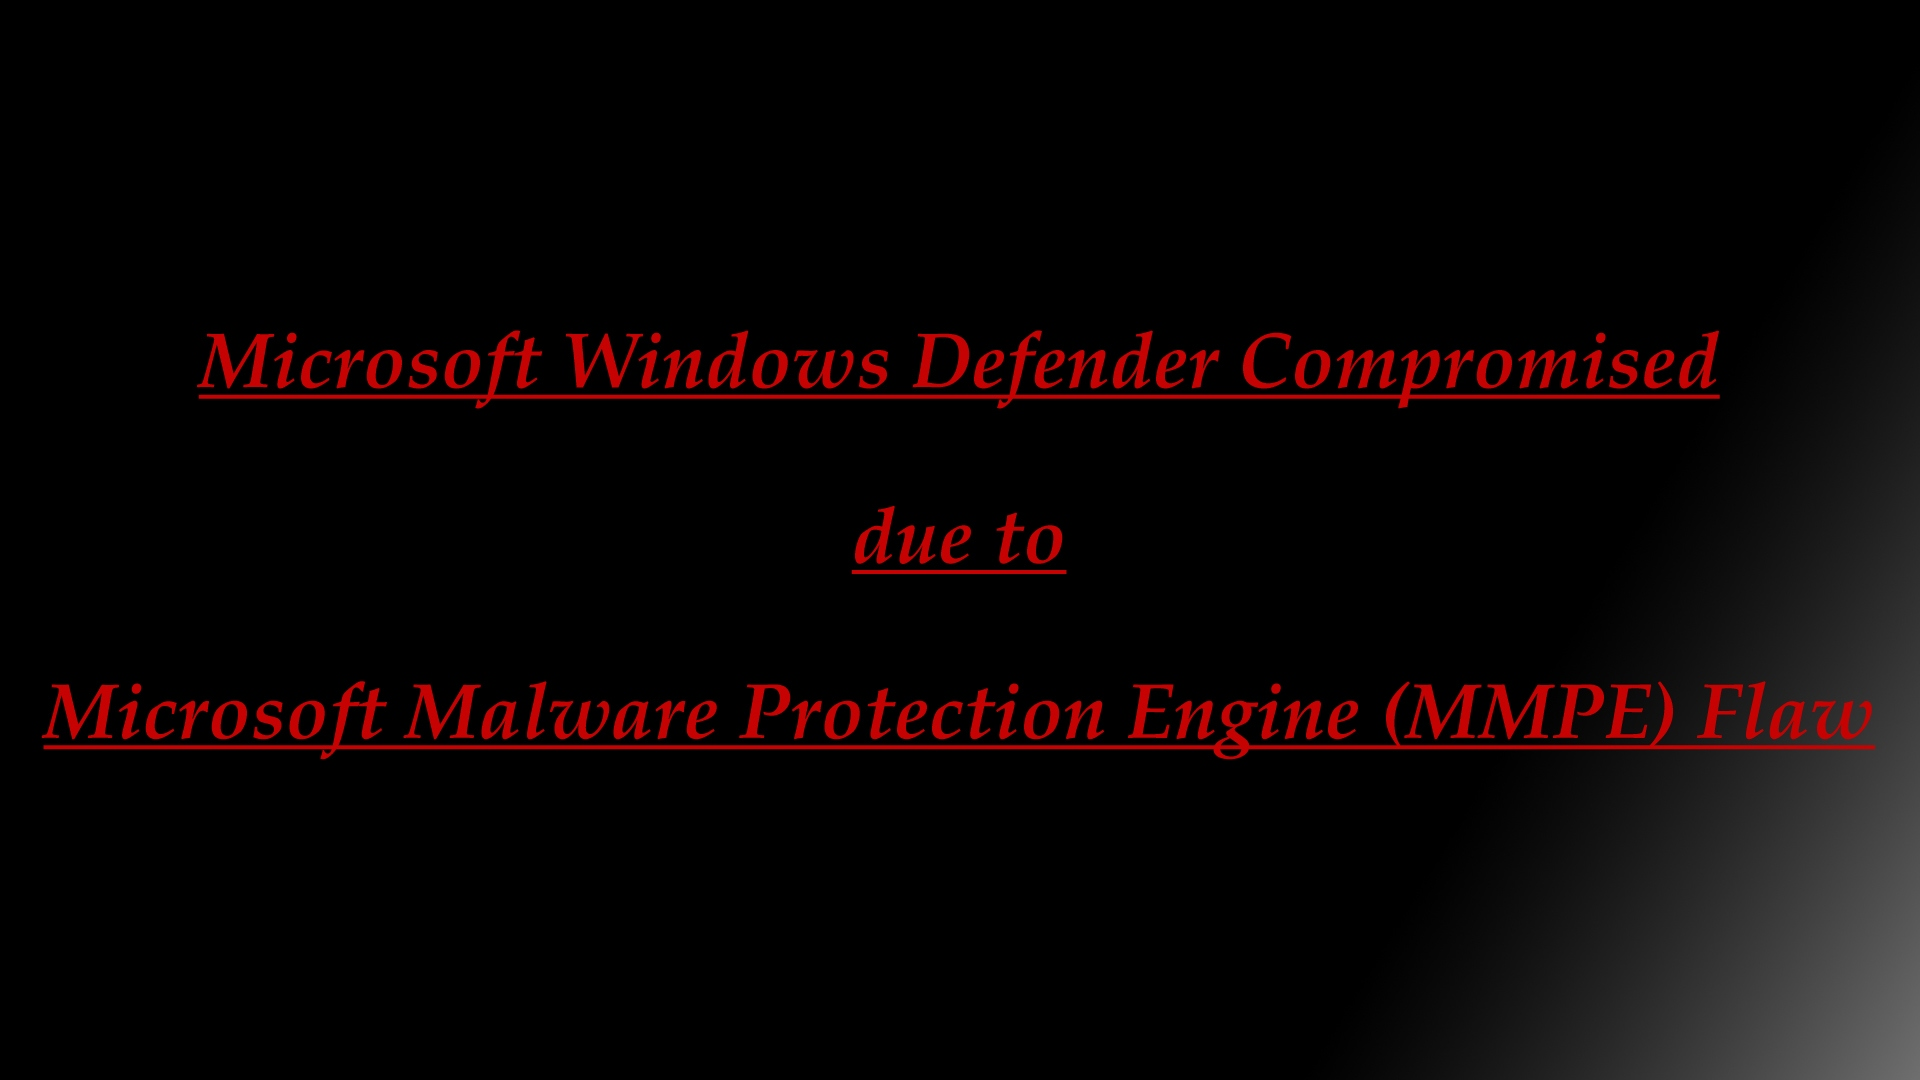 Windows Defender Compromised due to Microsoft Malware Protection Engine (MMPE) Flaw